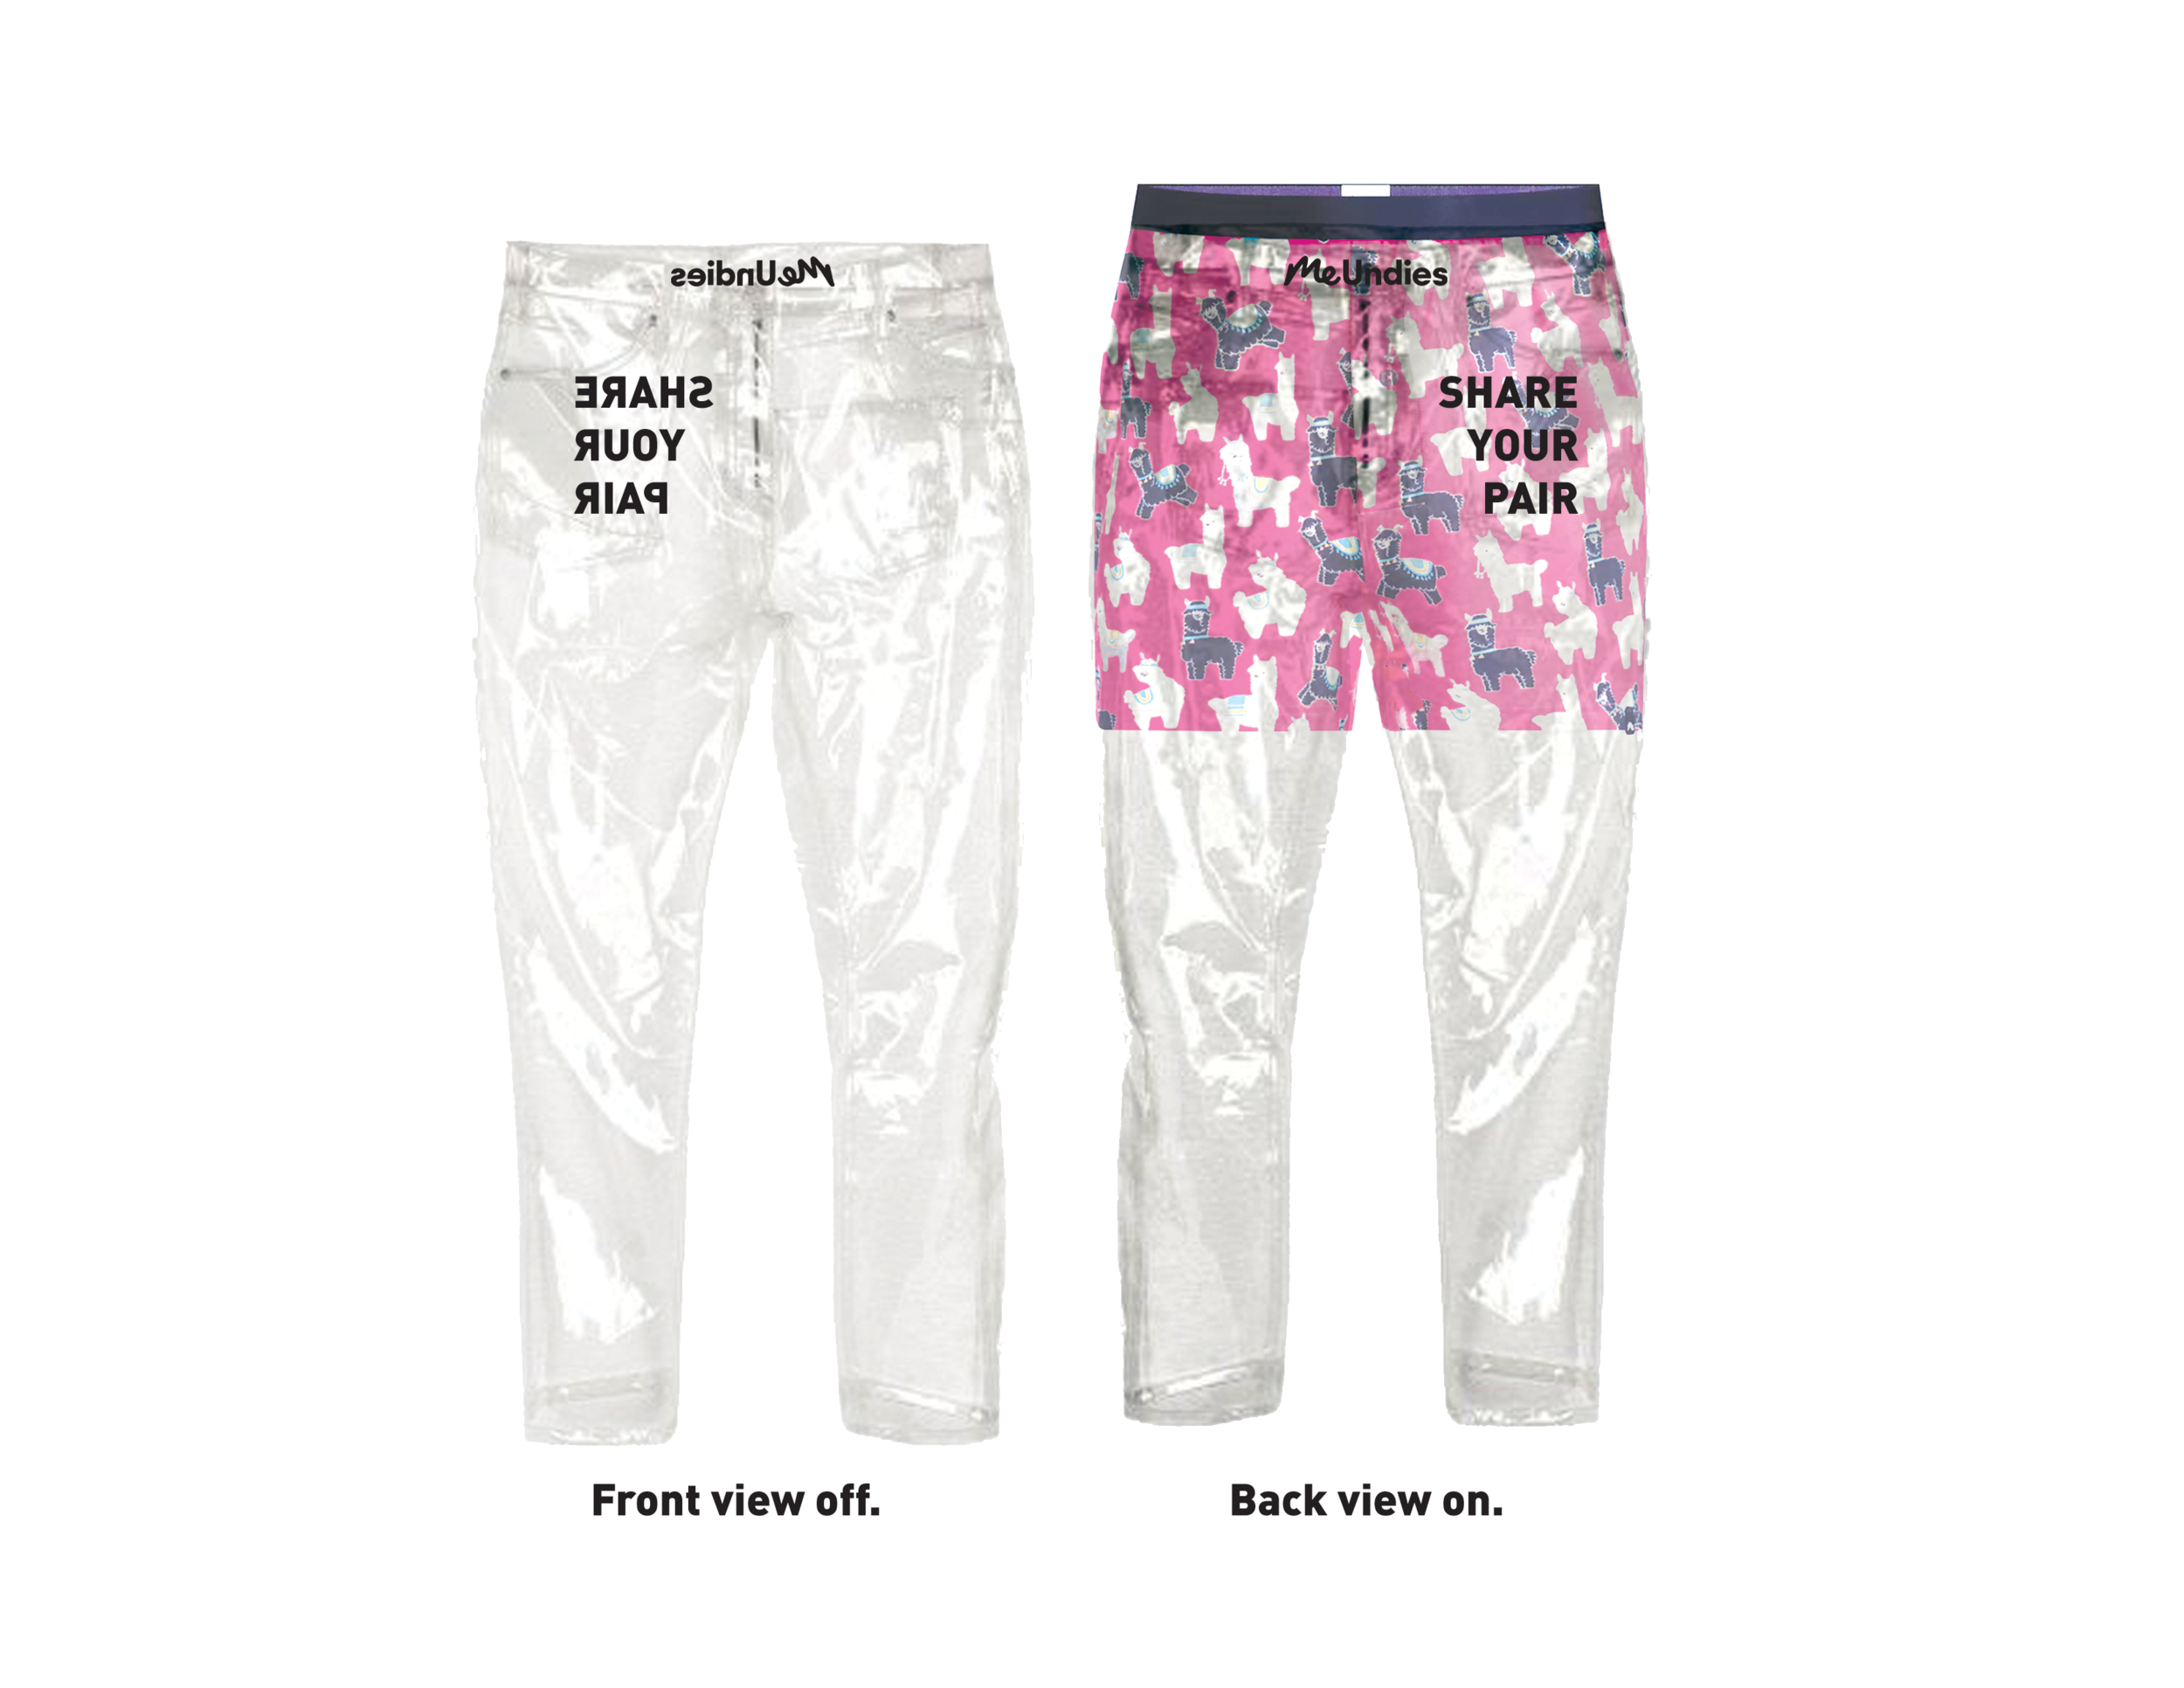 Every customer who signs up for a monthly subscription also gets see-through pants to share their pairs.